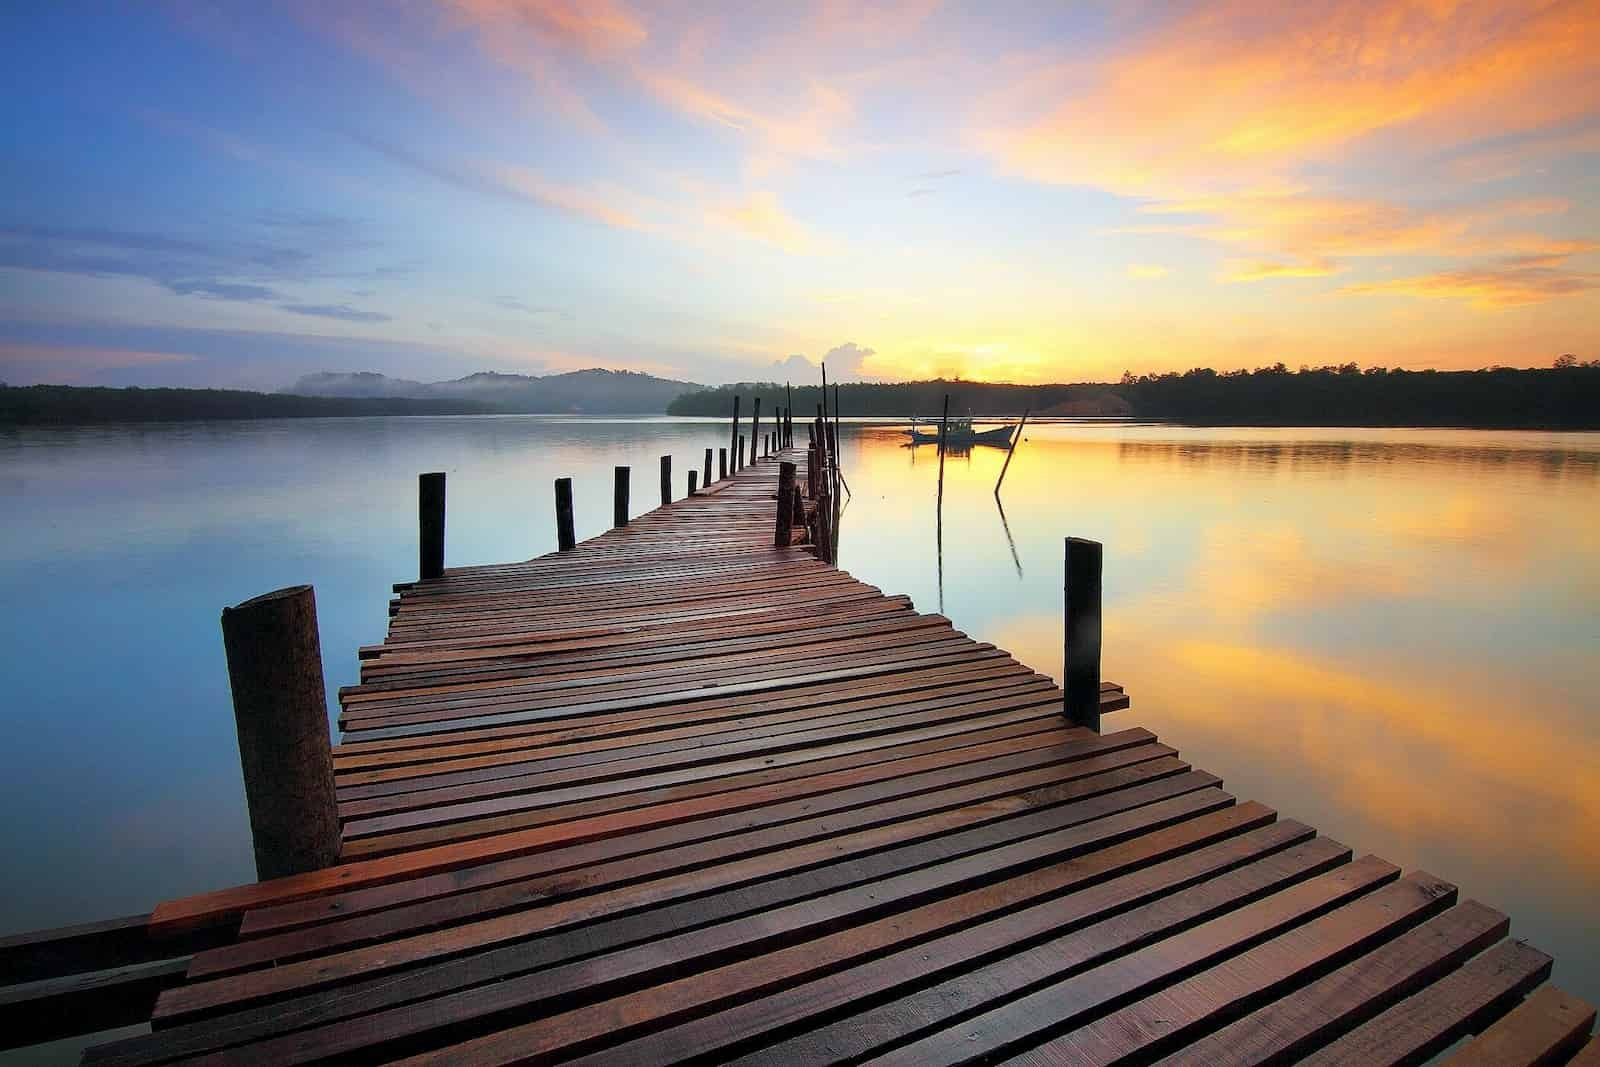 A long crooked dock to onboarding